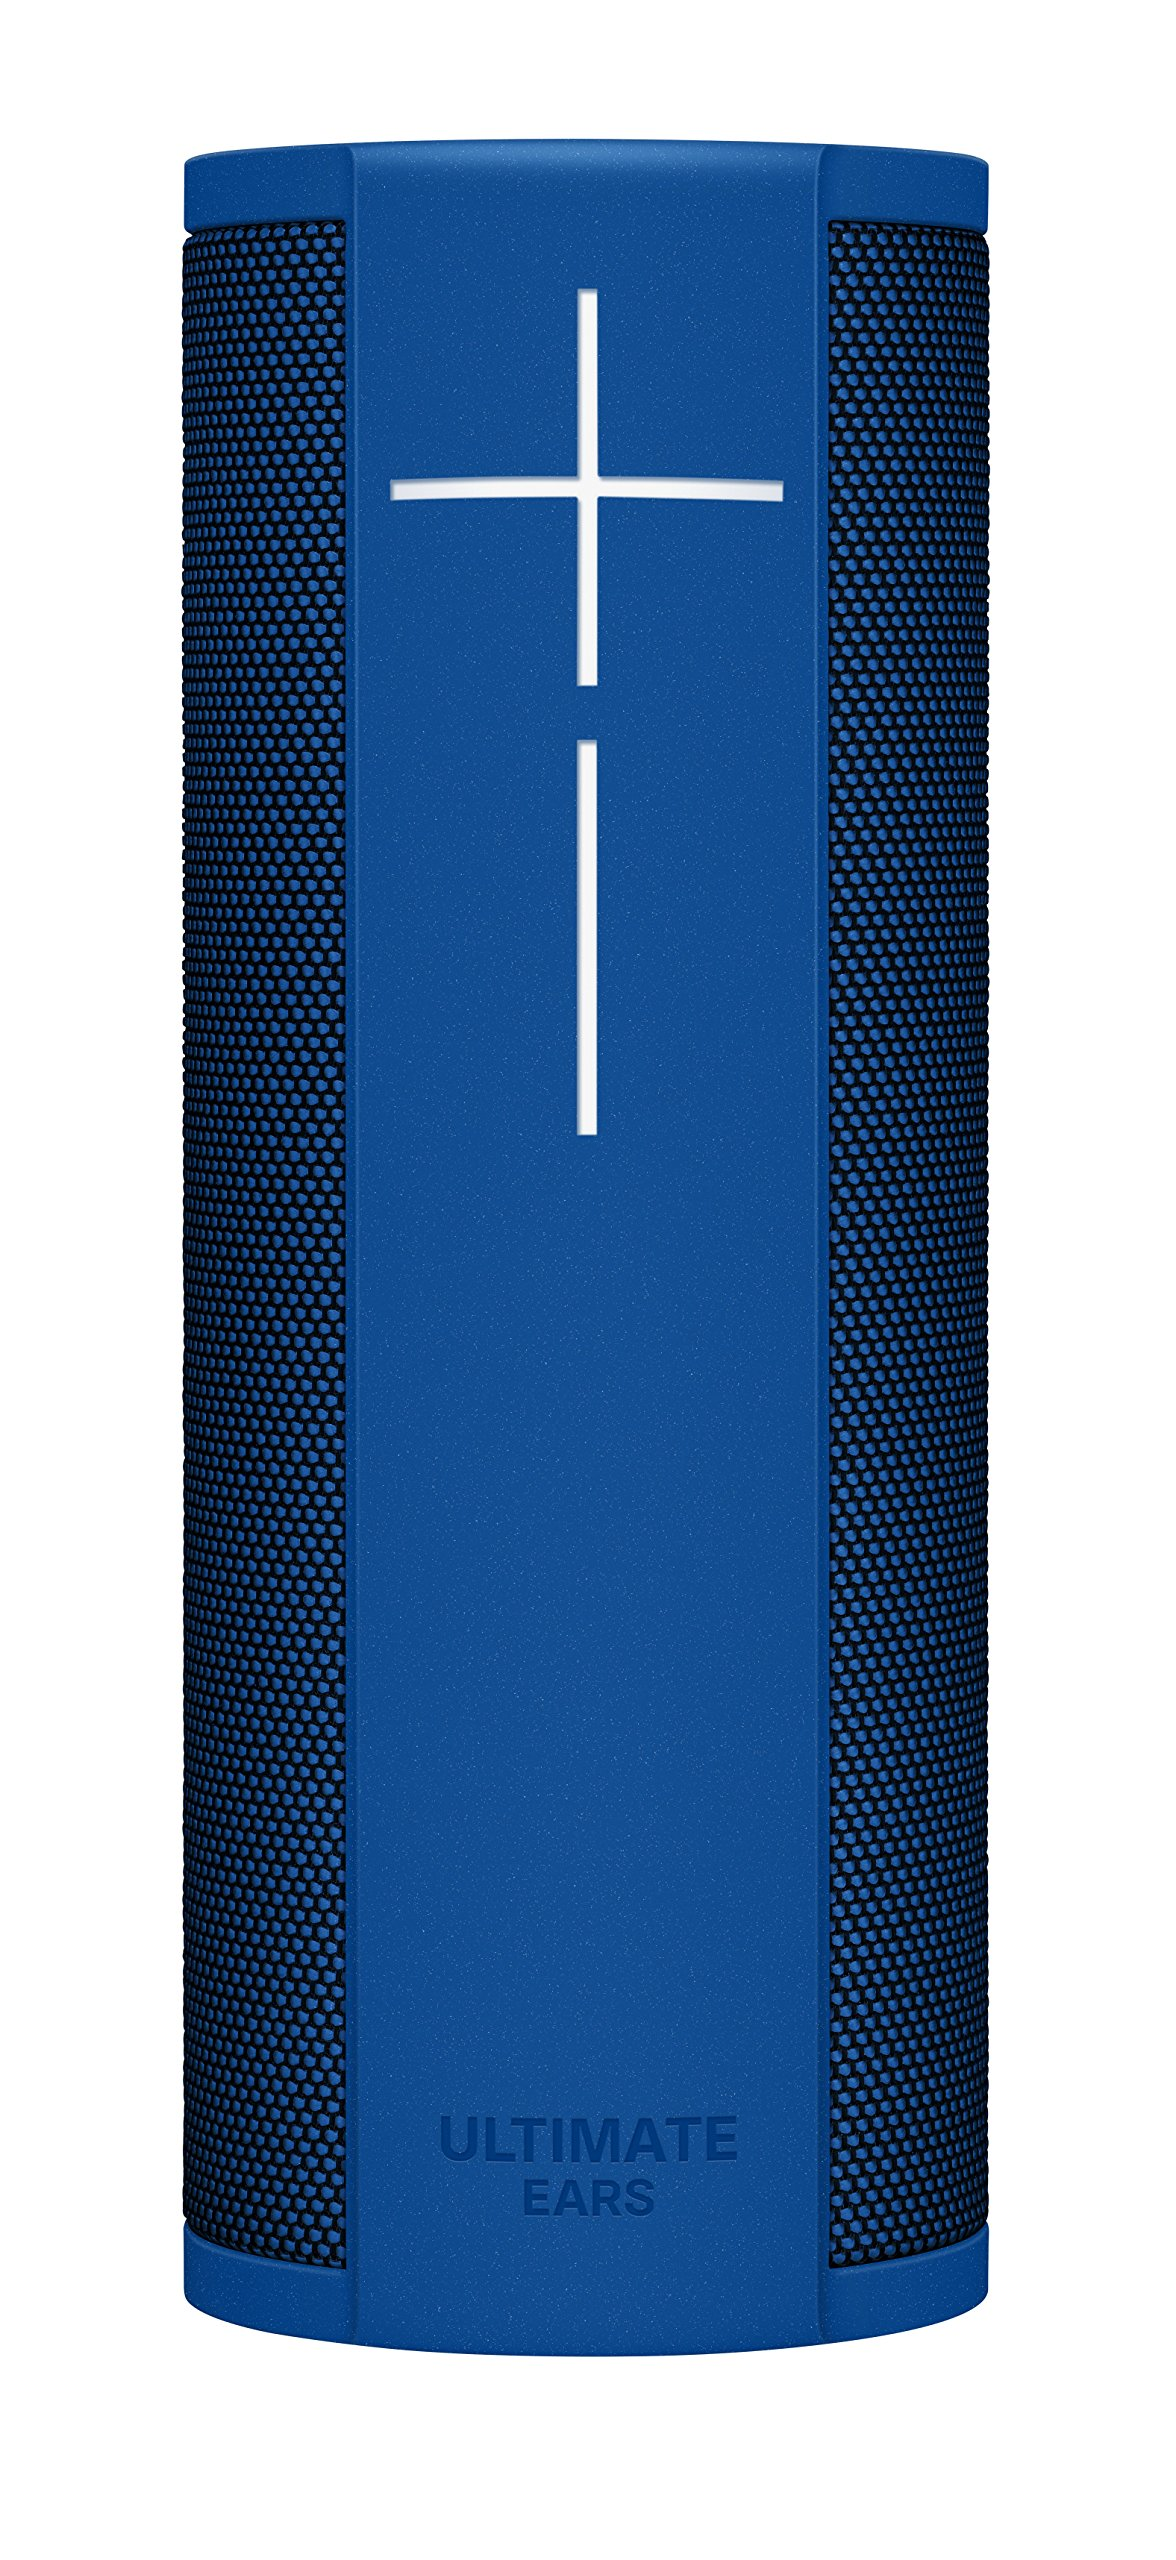 Ultimate Ears MEGABLAST Portable Wi-Fi / Bluetooth Speaker with hands-free Amazon Alexa voice control (waterproof) - Blue Steel